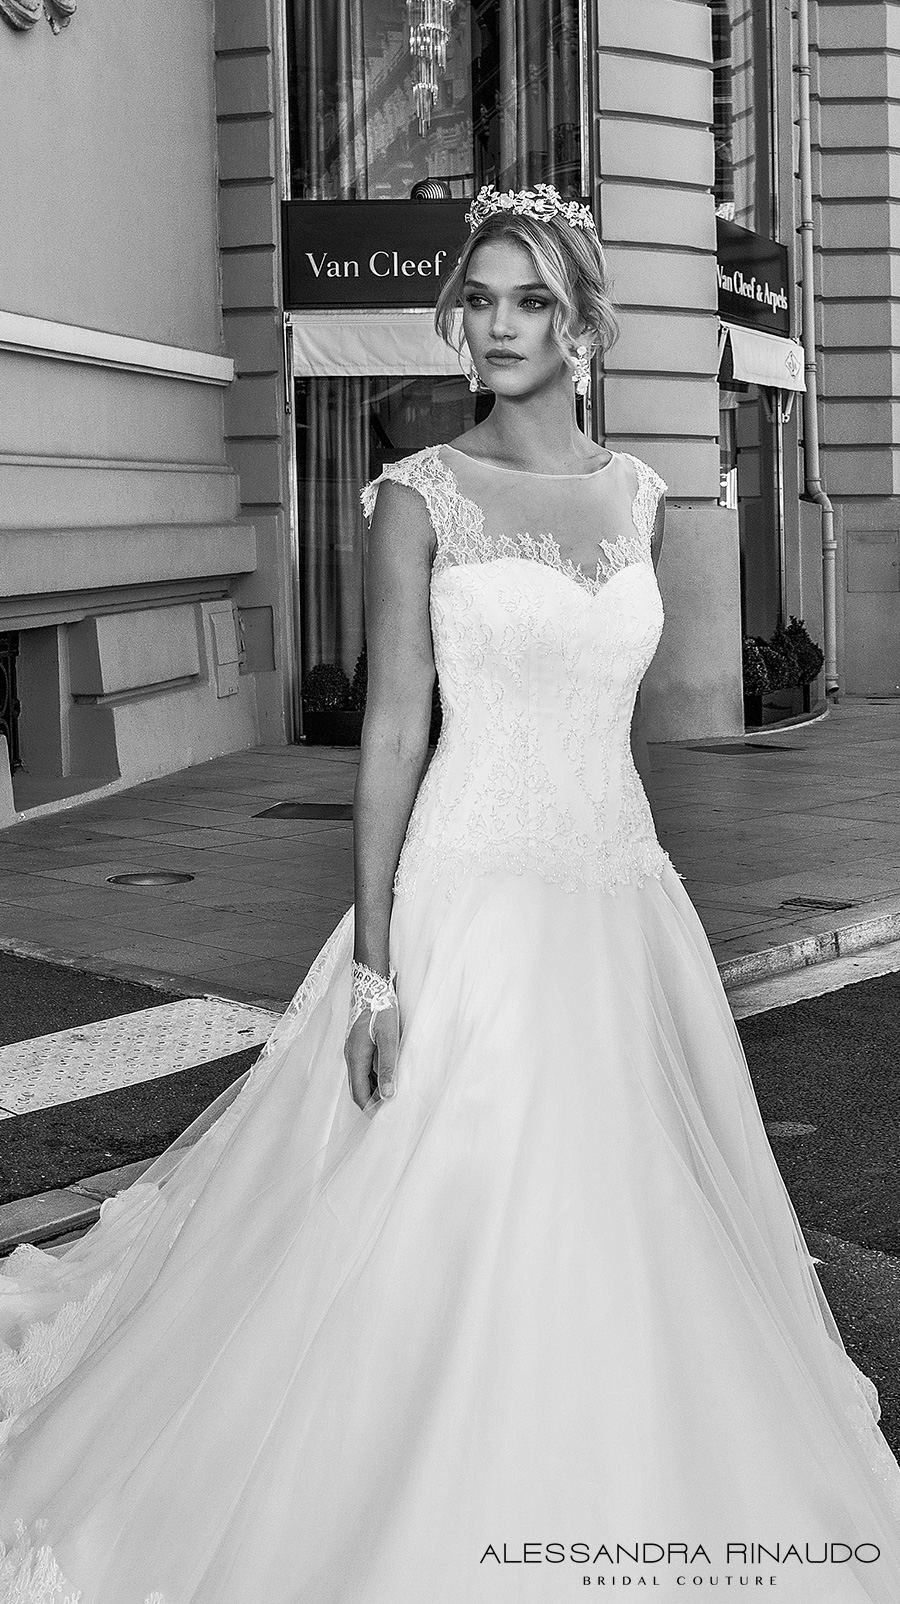 alessandra rinaudo 2017 bridal cap sleeves illusion round neck sweetheart neckline drop waist heavily embellished bodice a line wedding dress lace back long train (boadicea) zv